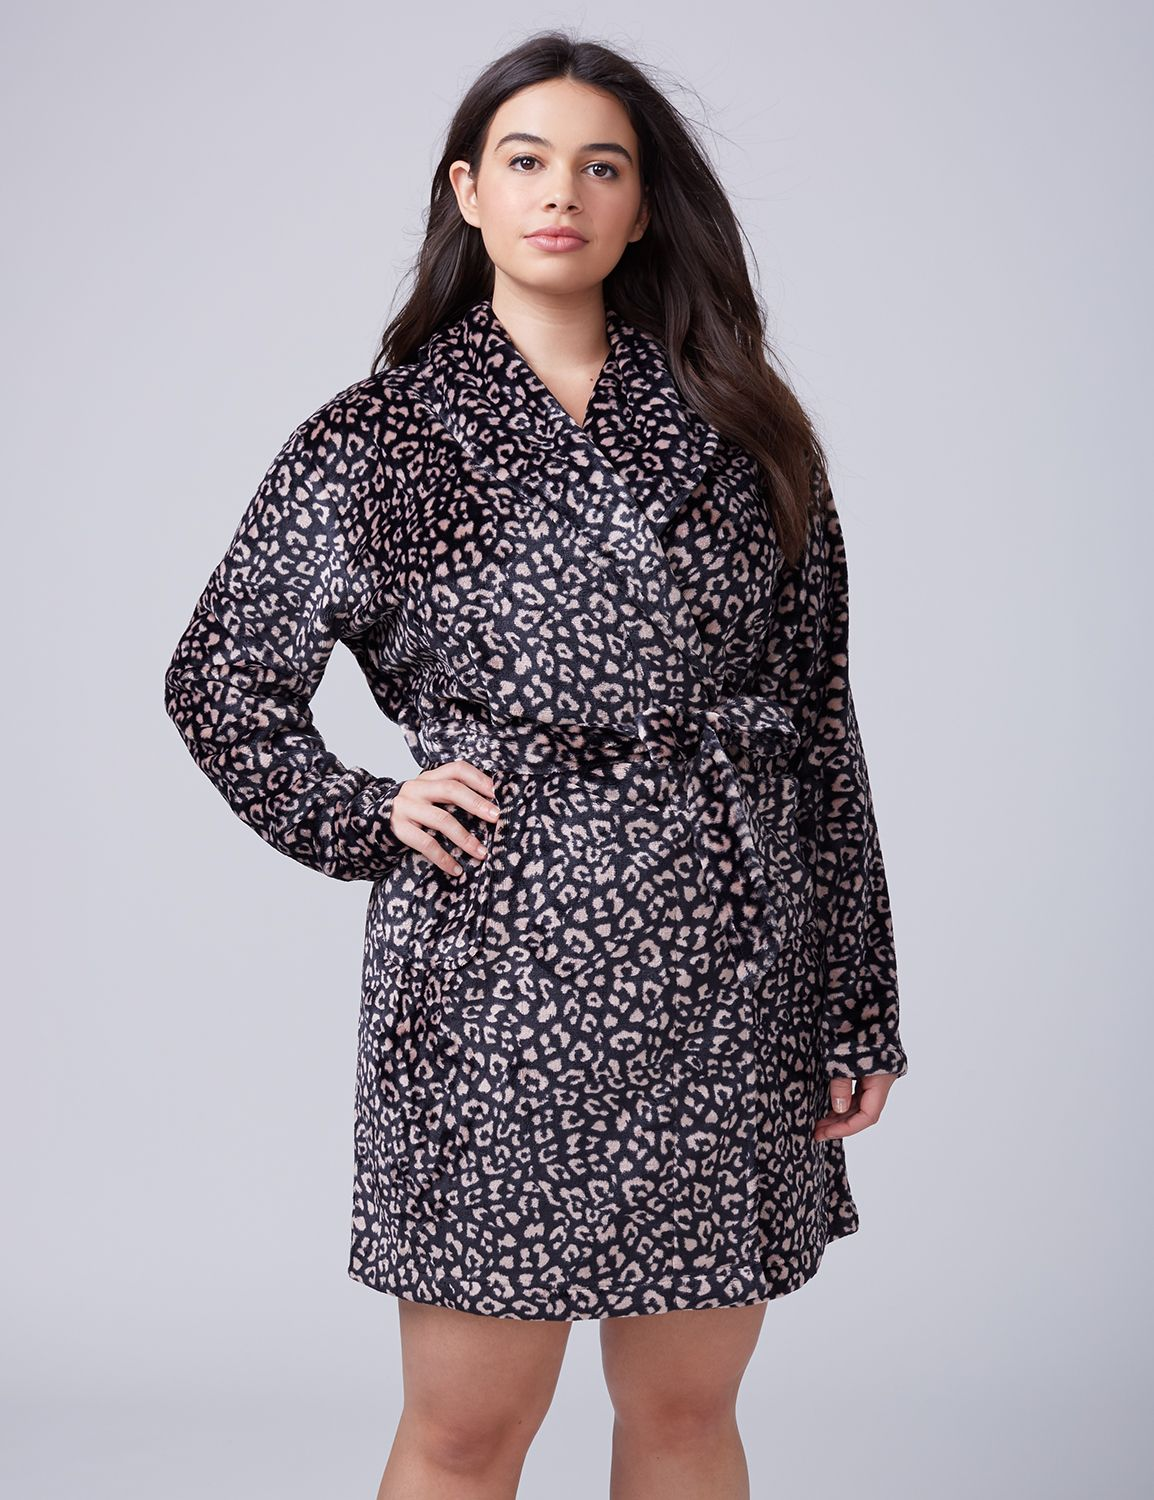 Lane Bryant Womens Printed Plush Robe 14/16 Quiet Animal